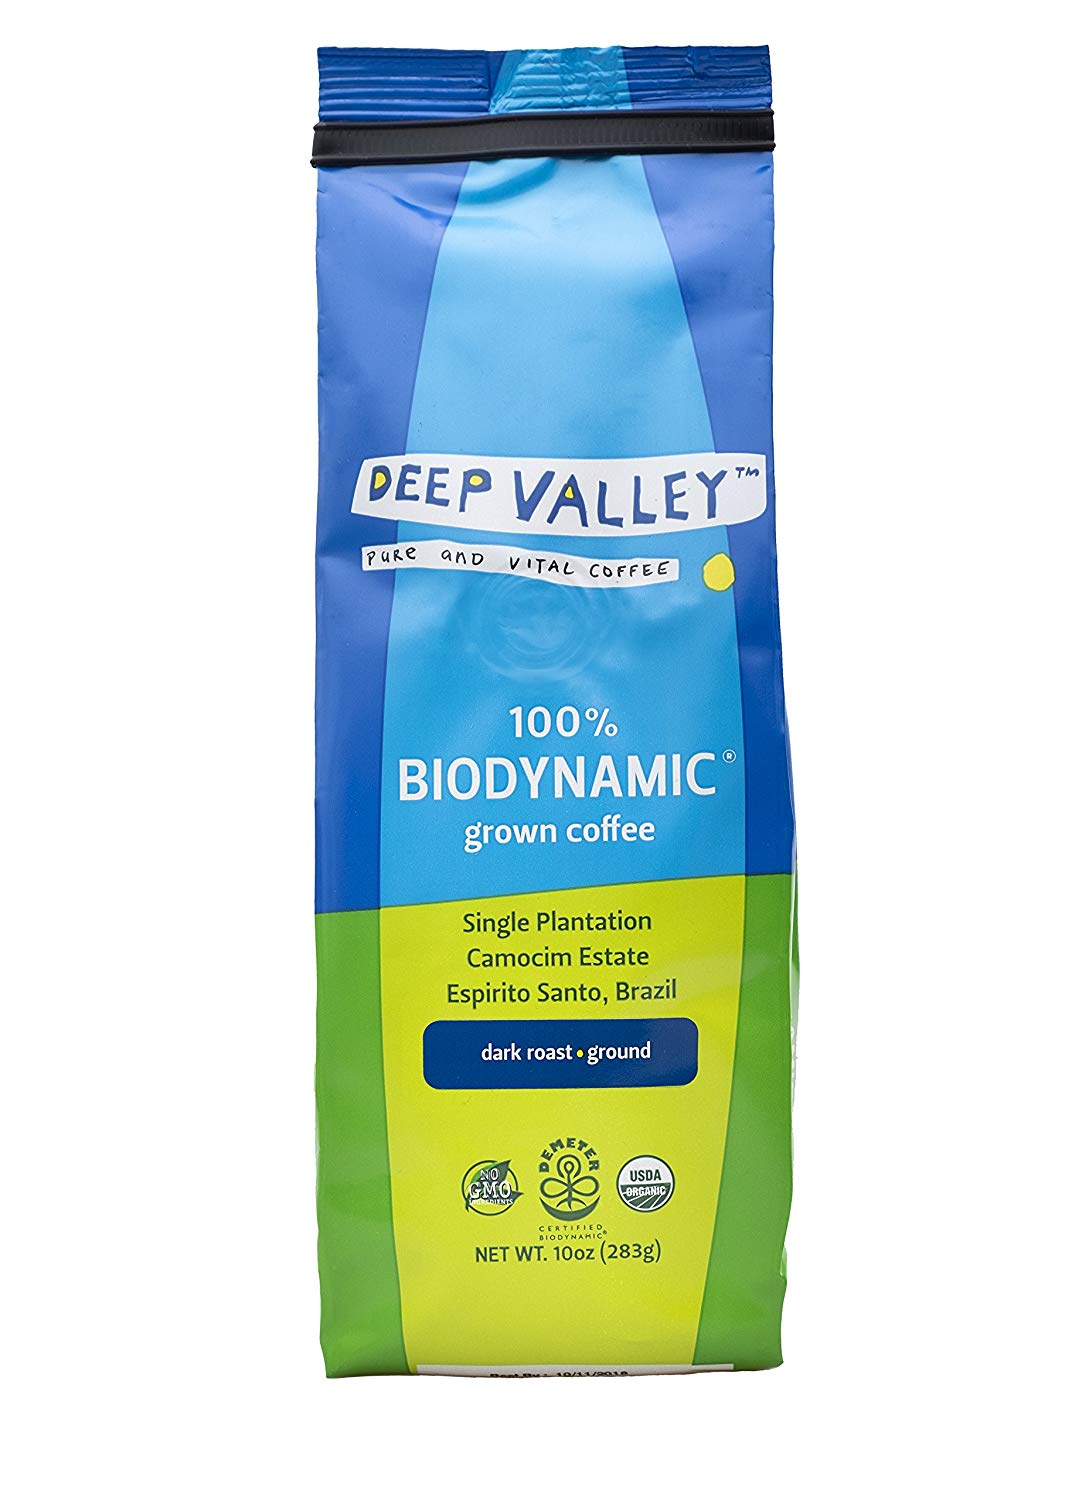 Deep Valley Certified Biodynamic Organic Ground Coffee, Dark Roast, NON-GMO, Sourced from Single Origin Sustainable farm, 10 oz bag